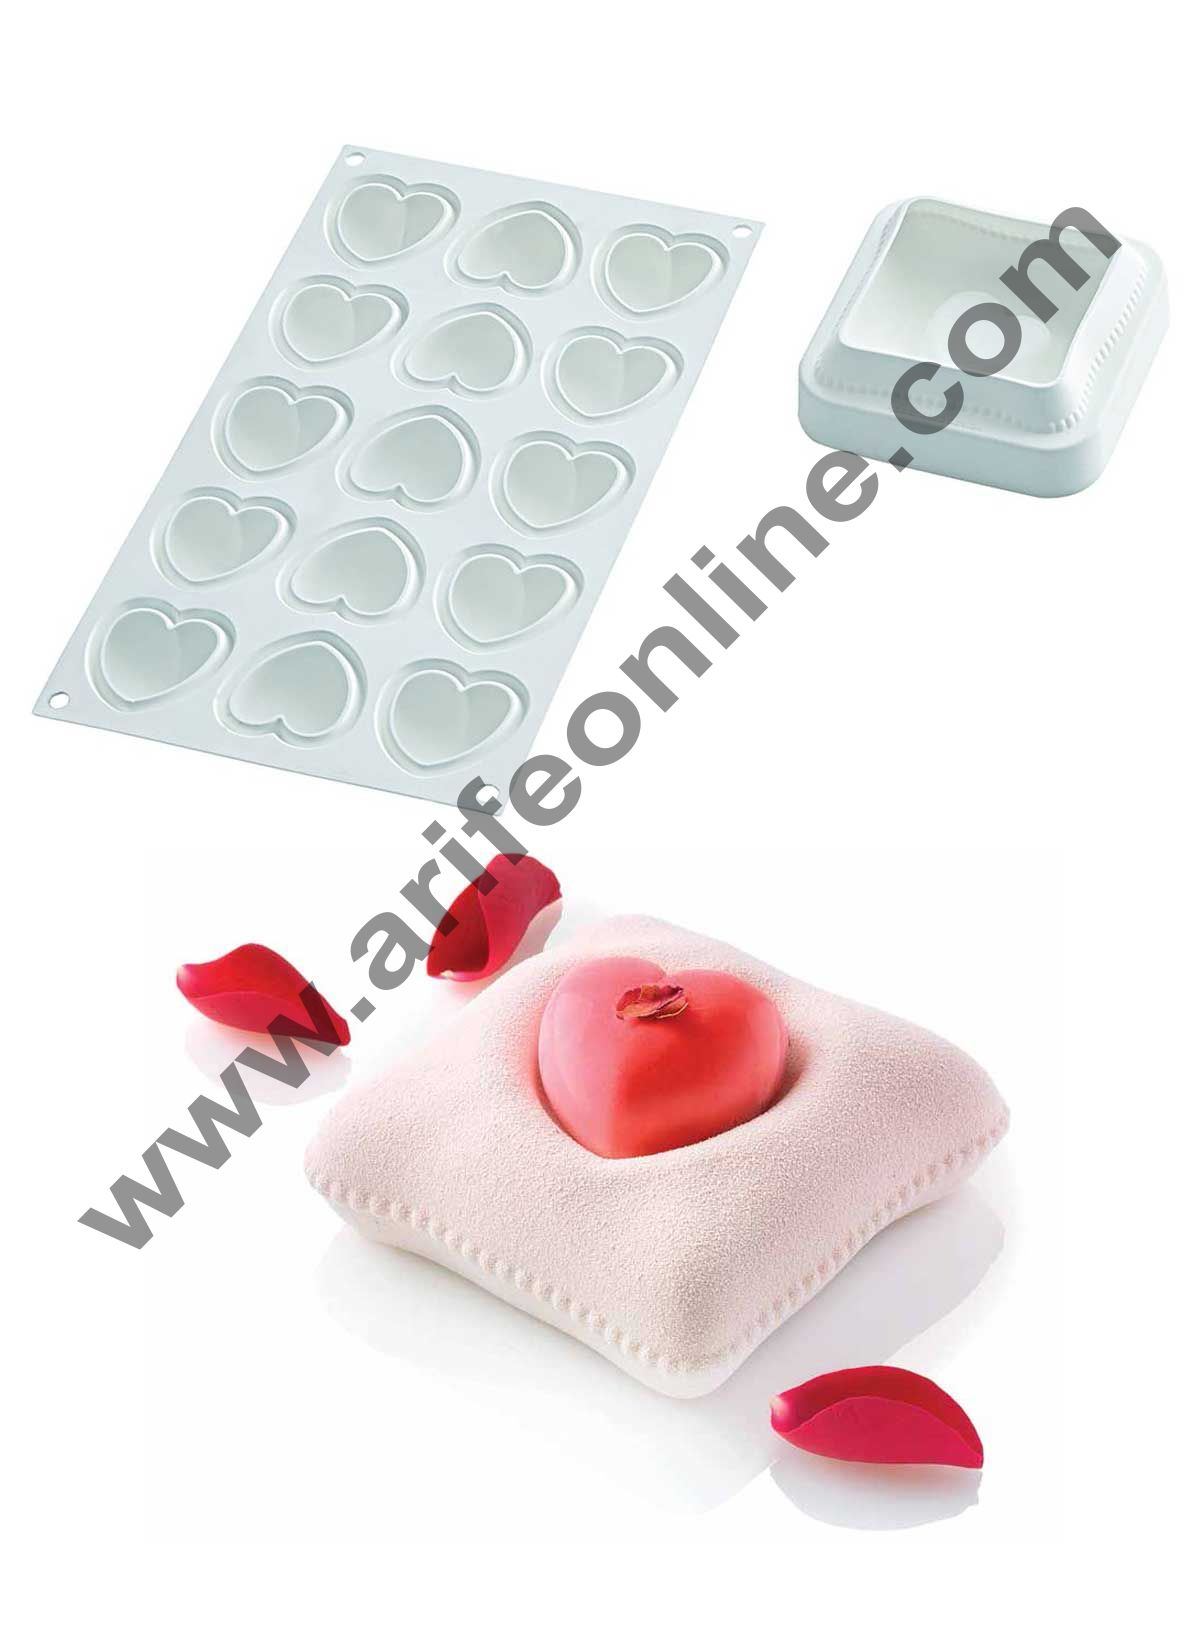 Cake Decor Silicon TI Voglio Bene Design Cake Mould Mousse Cake Mould Silicon Moulds